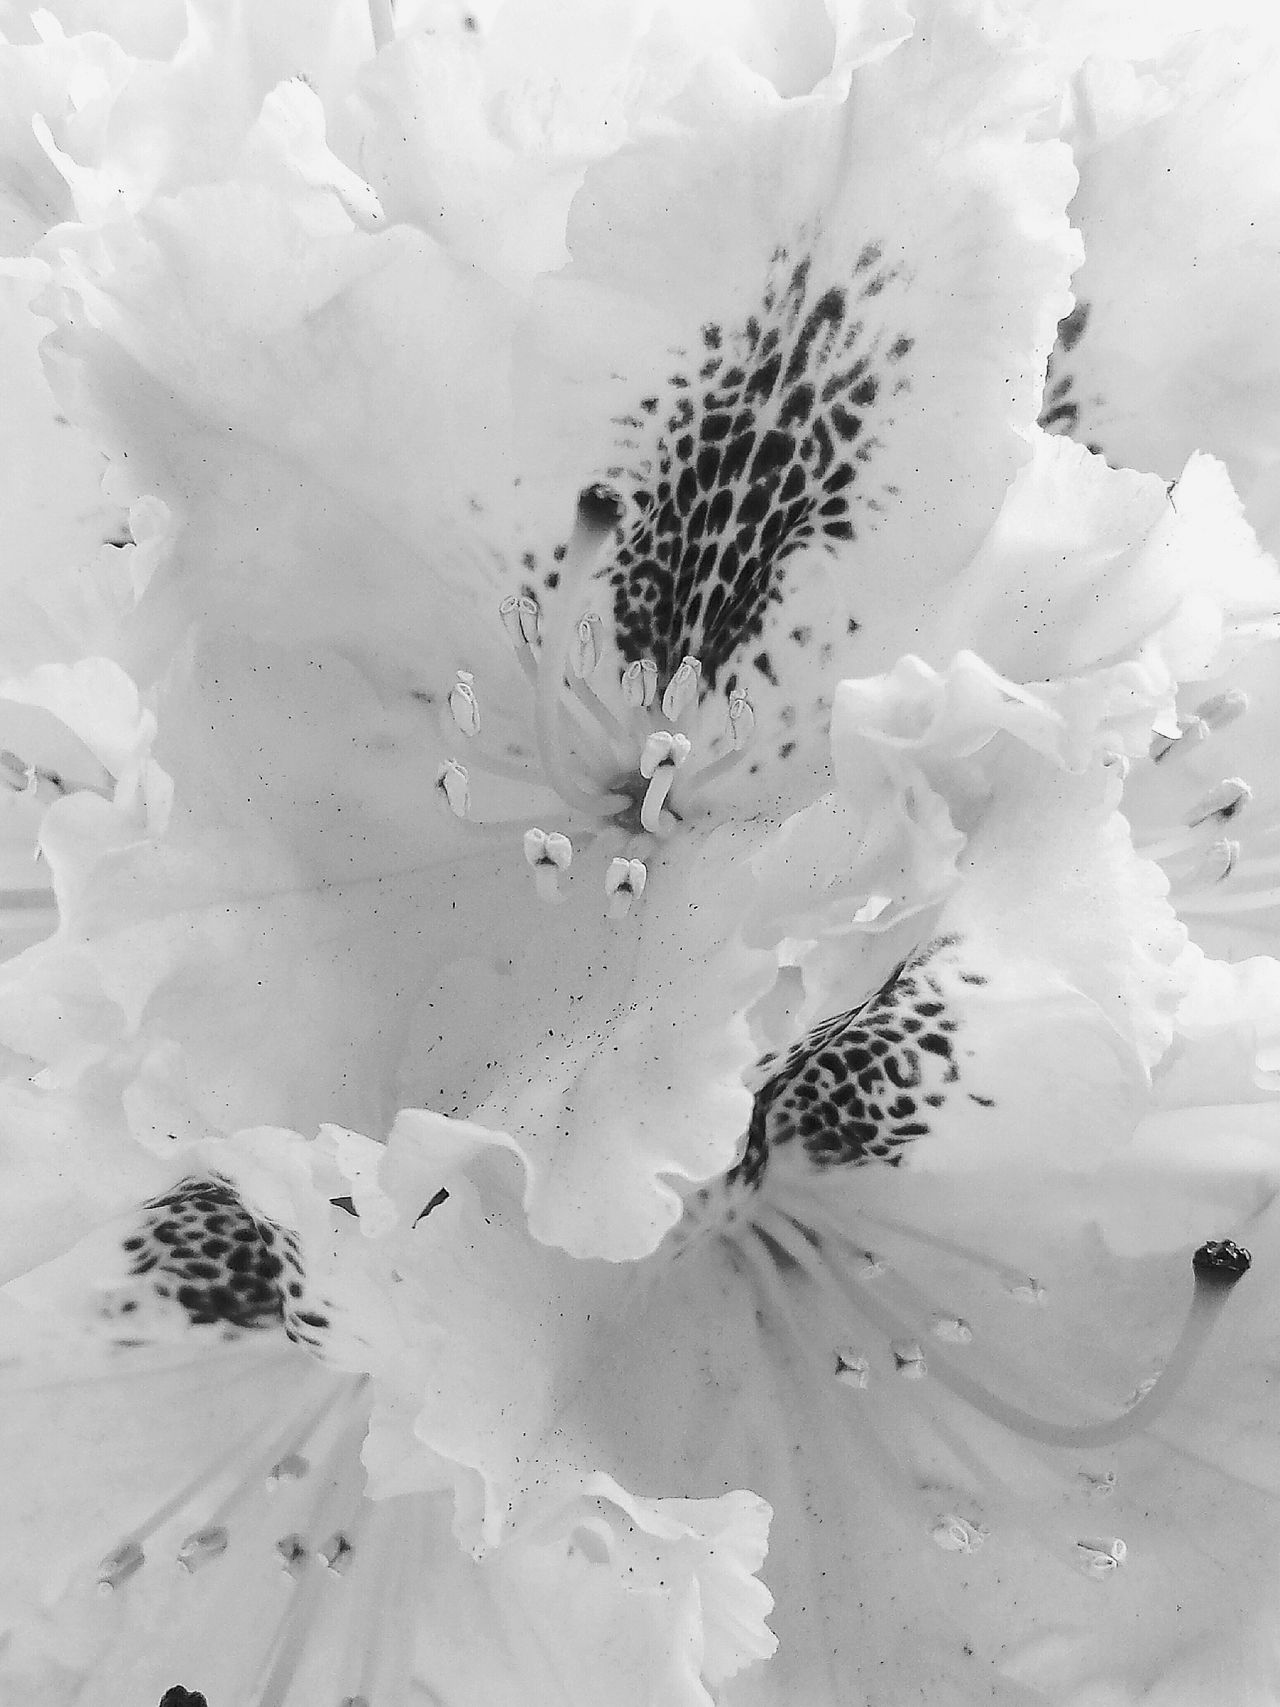 Nature's Diversities Rhododendronblűte Rhododendron Blossoms Close Up Close-up Macro Macro Beauty B&W Collection White Album Studies Of Whiteness Studies Of Botany Black&white Blossoming Magic Blütenschönheit Blütenrausch Blütenzart Blütenzauber Blossoming Beauty Wonderful Nature Blűtenstempel Macro Blossoms Showcase: May Beautiful Nature Ladyphotographerofthemonth Full In Blossom